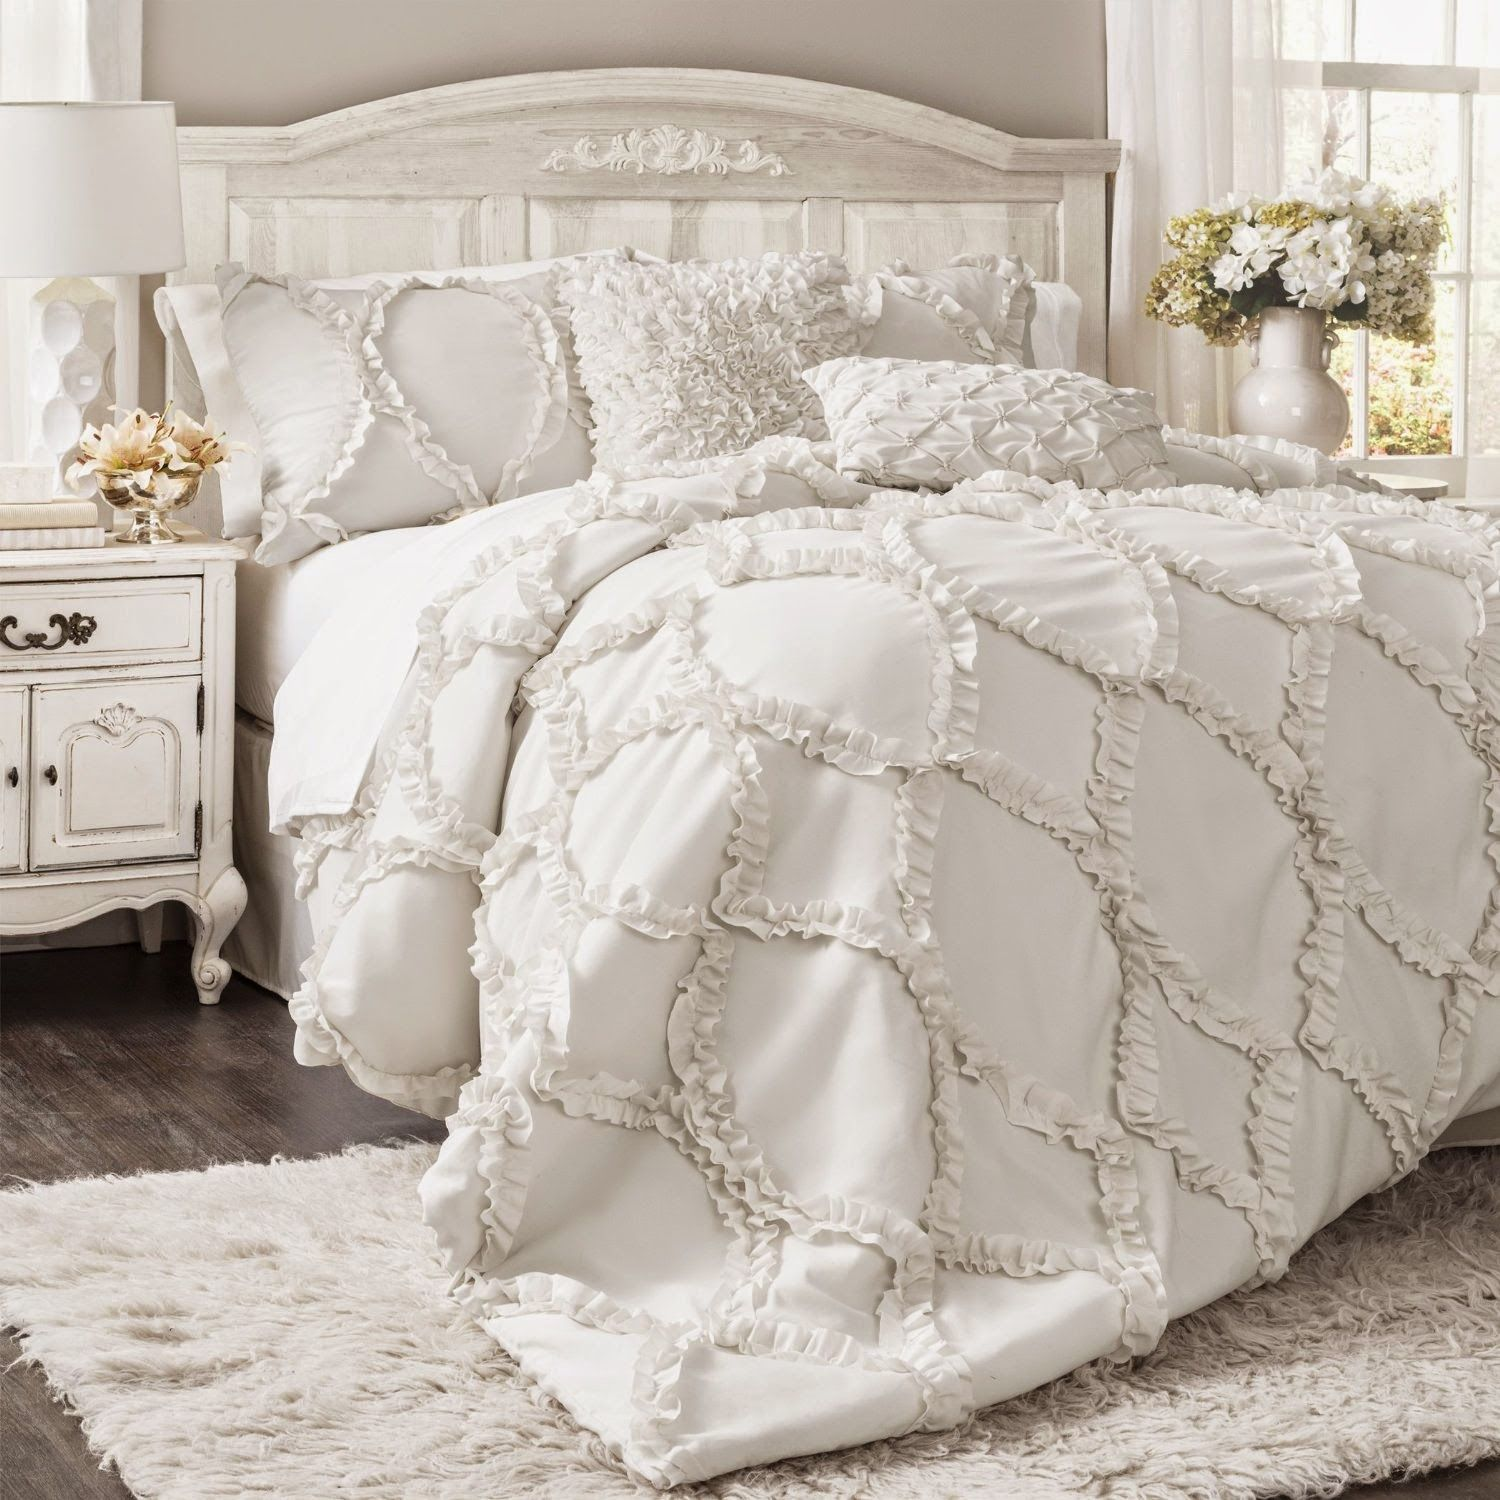 13 bedding sets that won 39 t break the budget bedrooms master bedroom and shabby Master bedroom bed linens